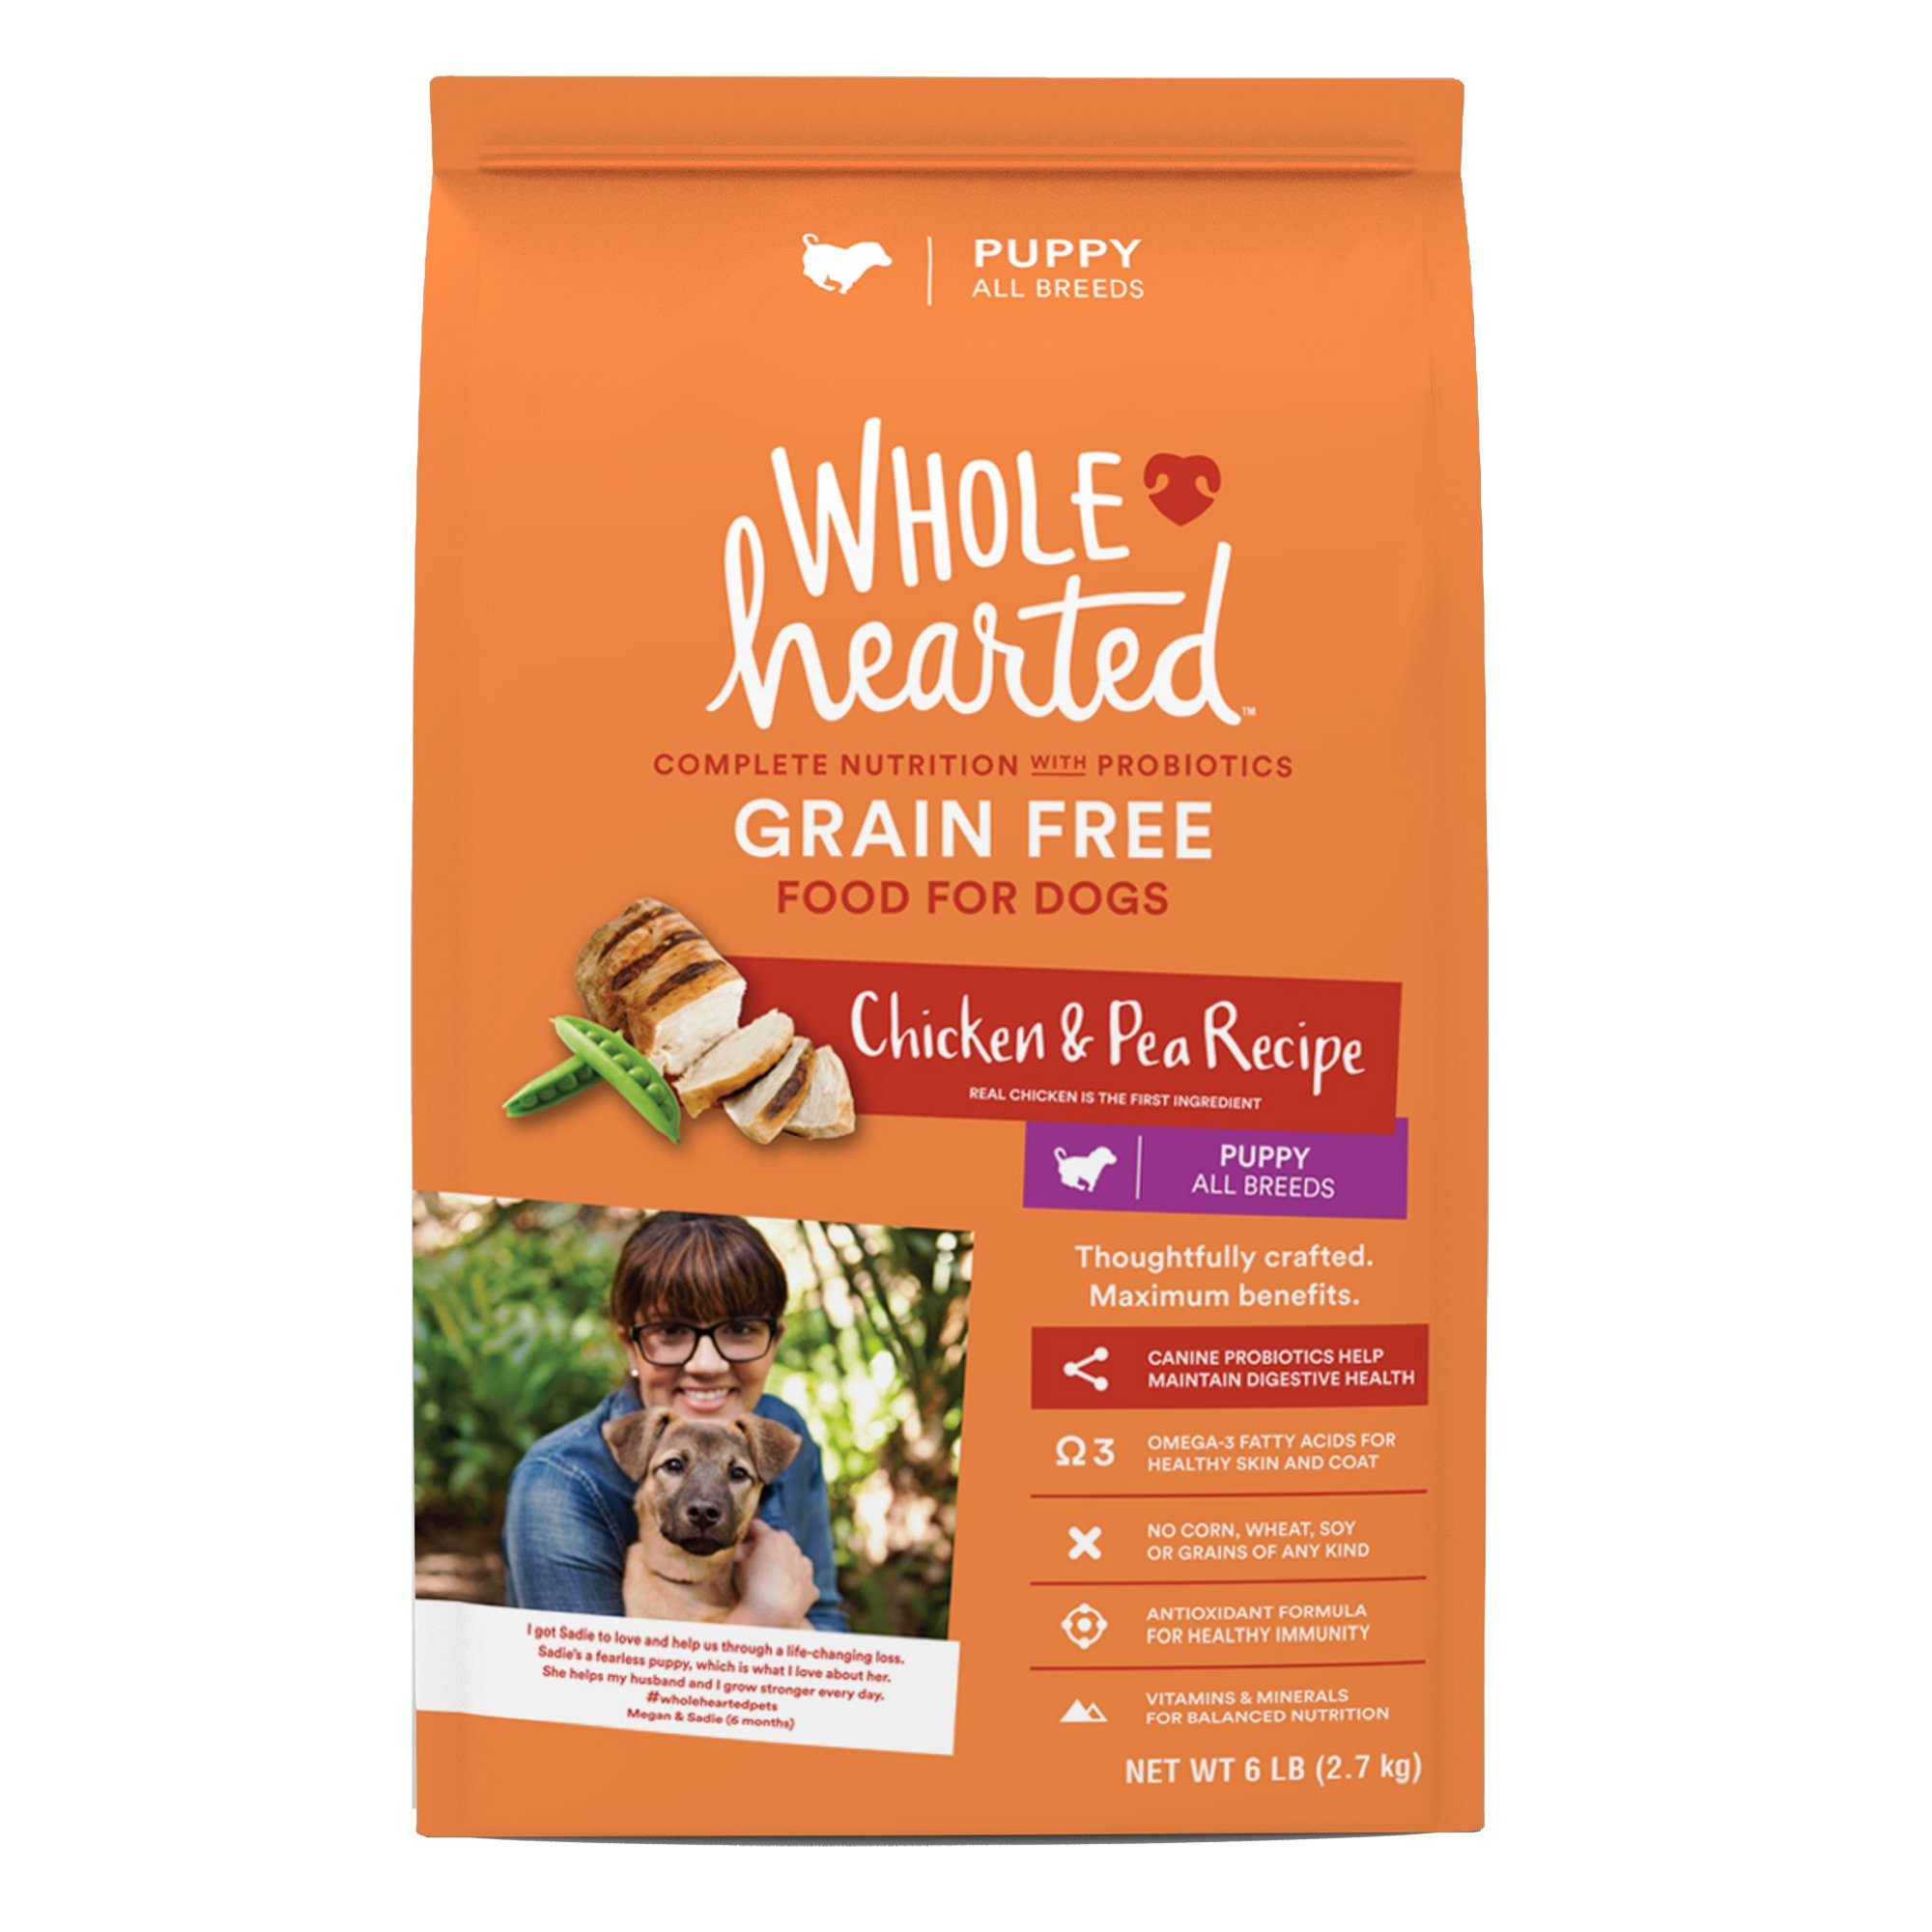 WholeHearted Puppy Food - Grain Free Chicken & Pea